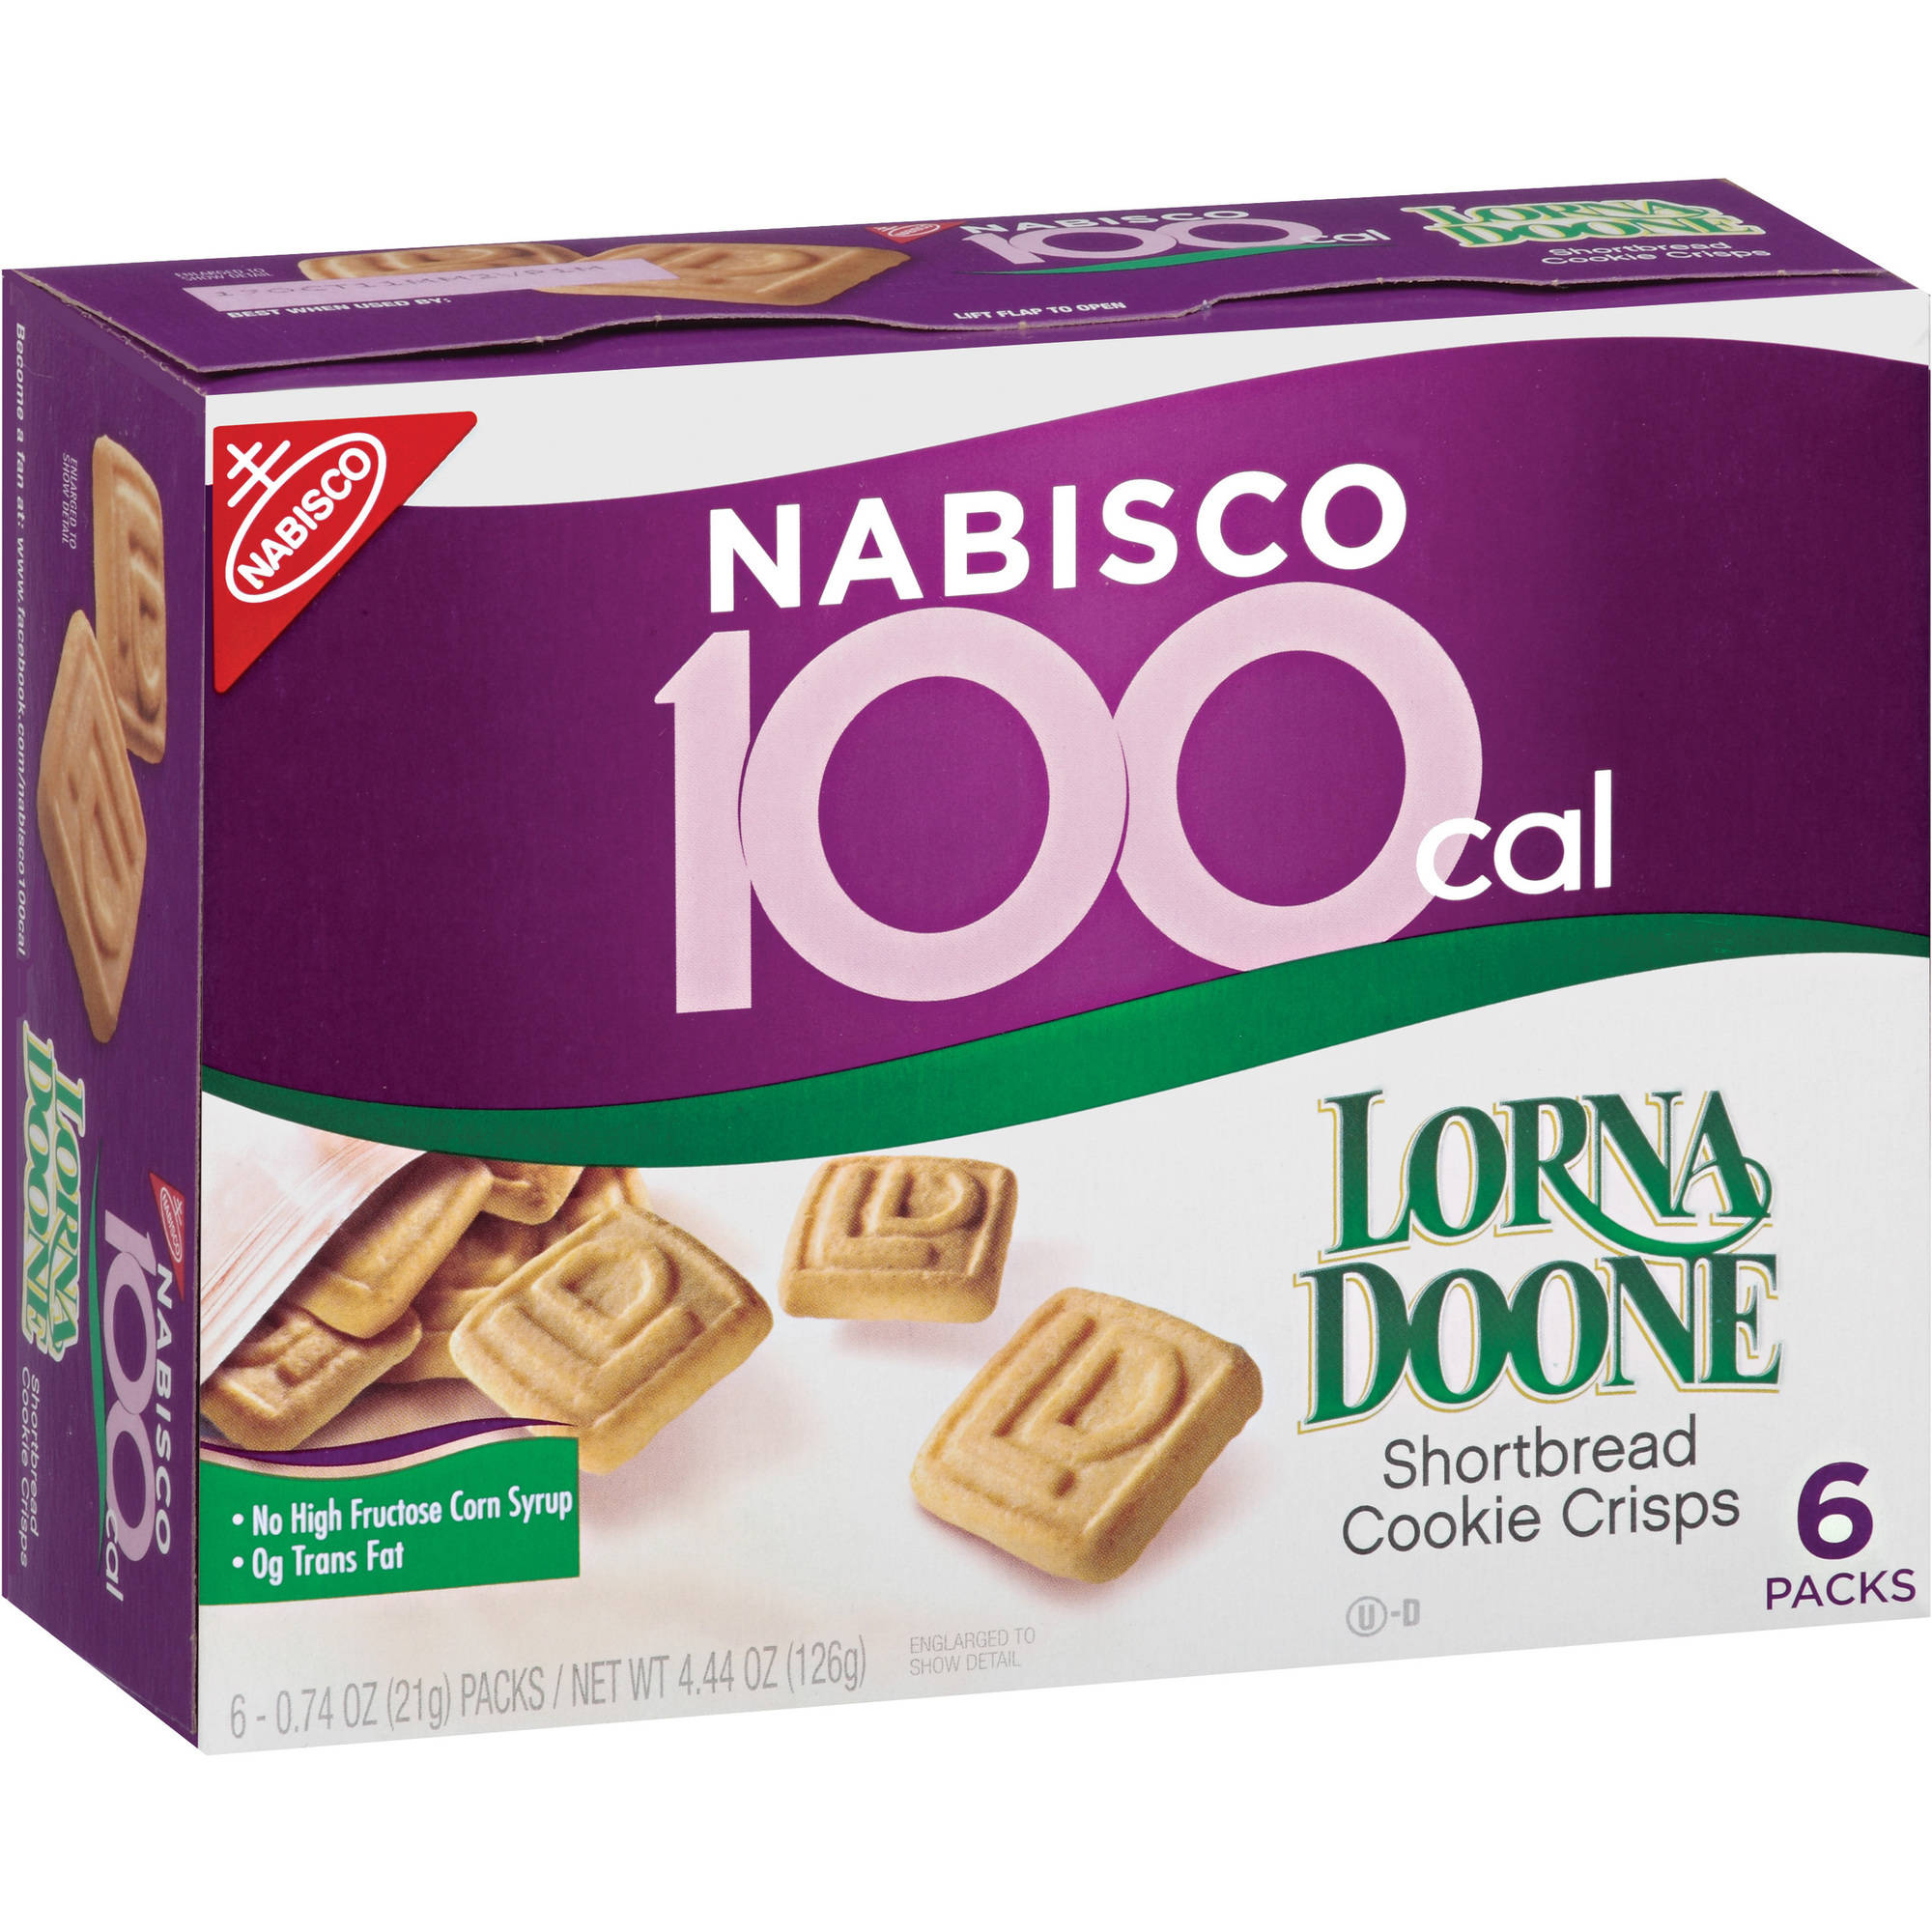 Nabisco 100 Cal Lorna Doone Shortbread Cookie Crisps 6 x 0.74oz (4.44oz)